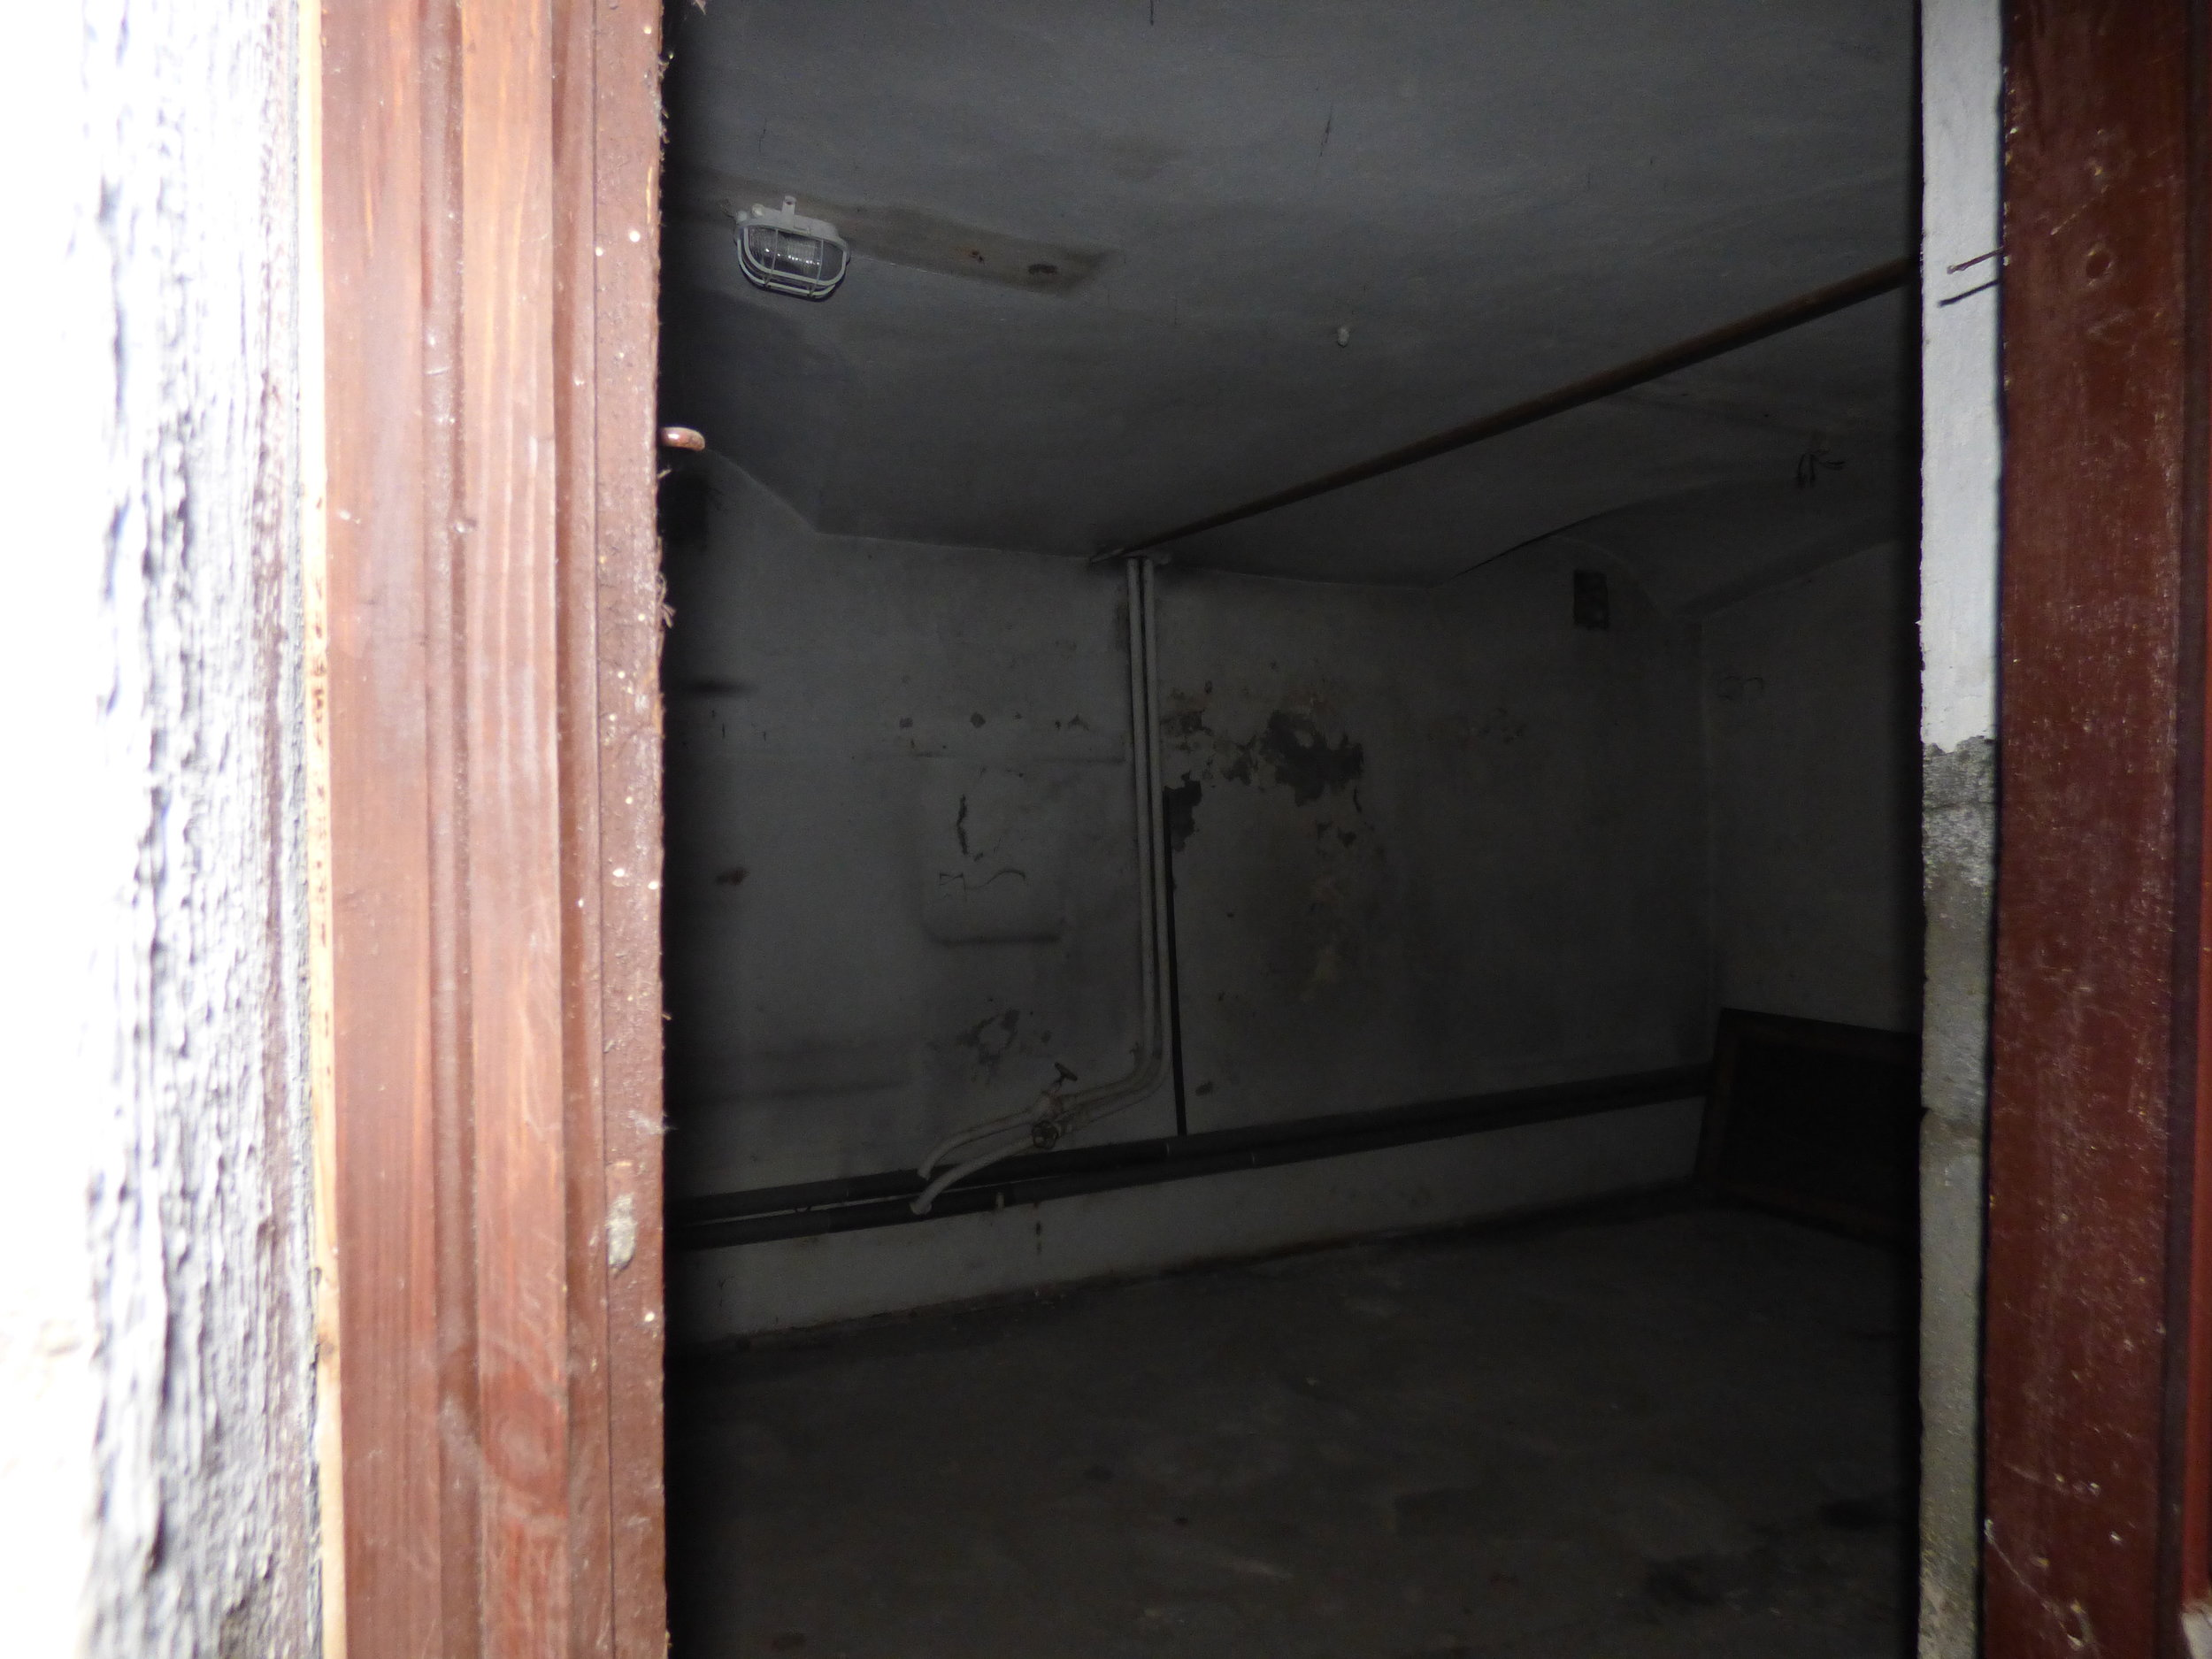 Entrance into one of the dungeons in the basement where many people spent their last days.